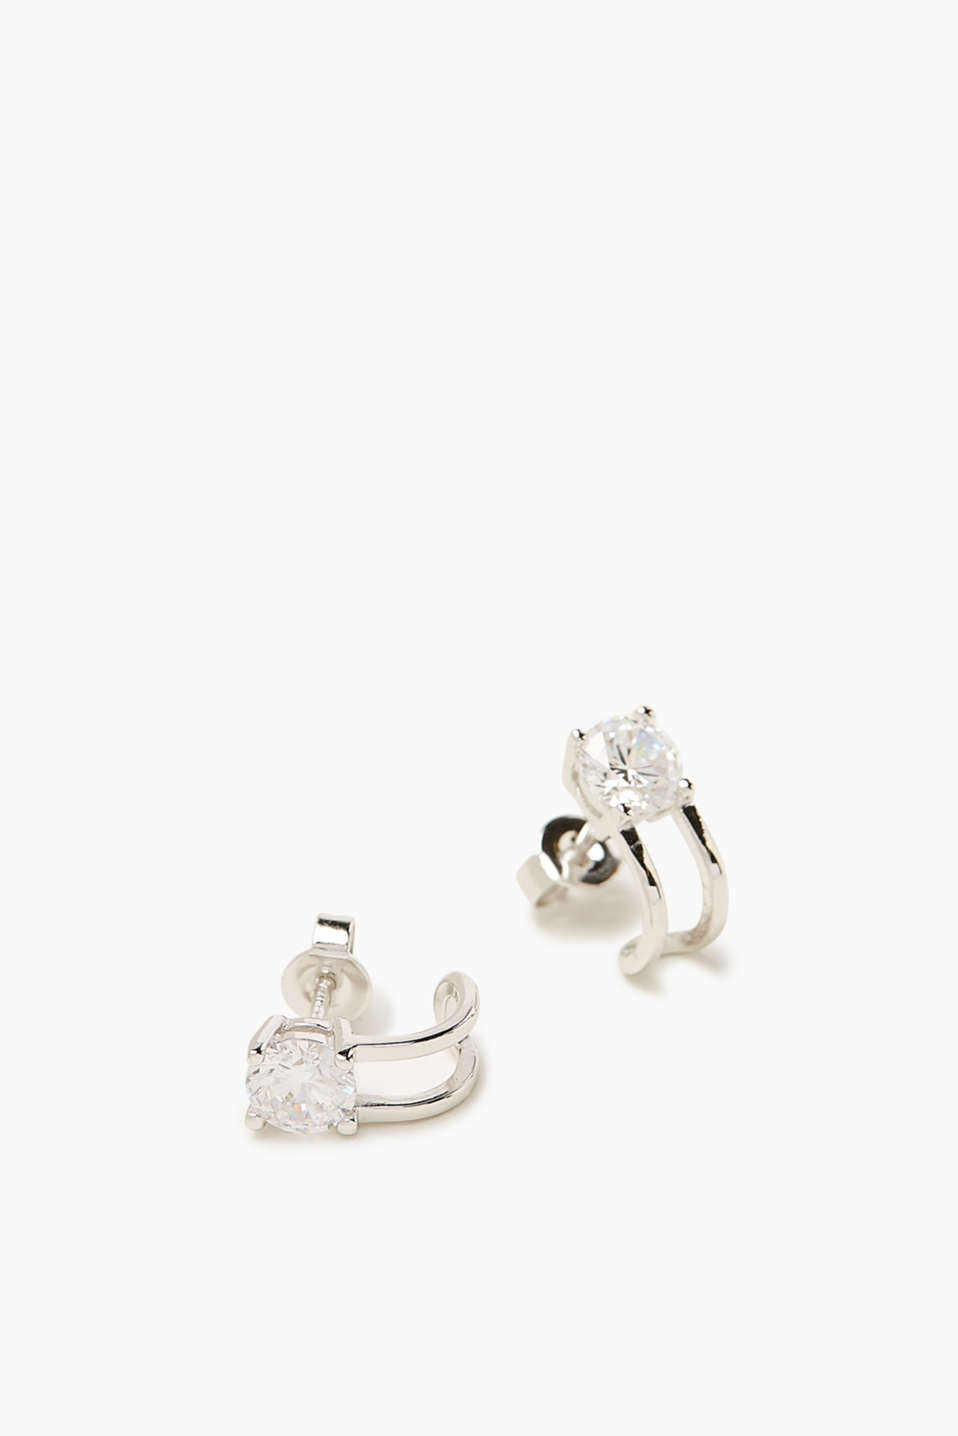 Esprit - Earrings with zirconia, sterling silver